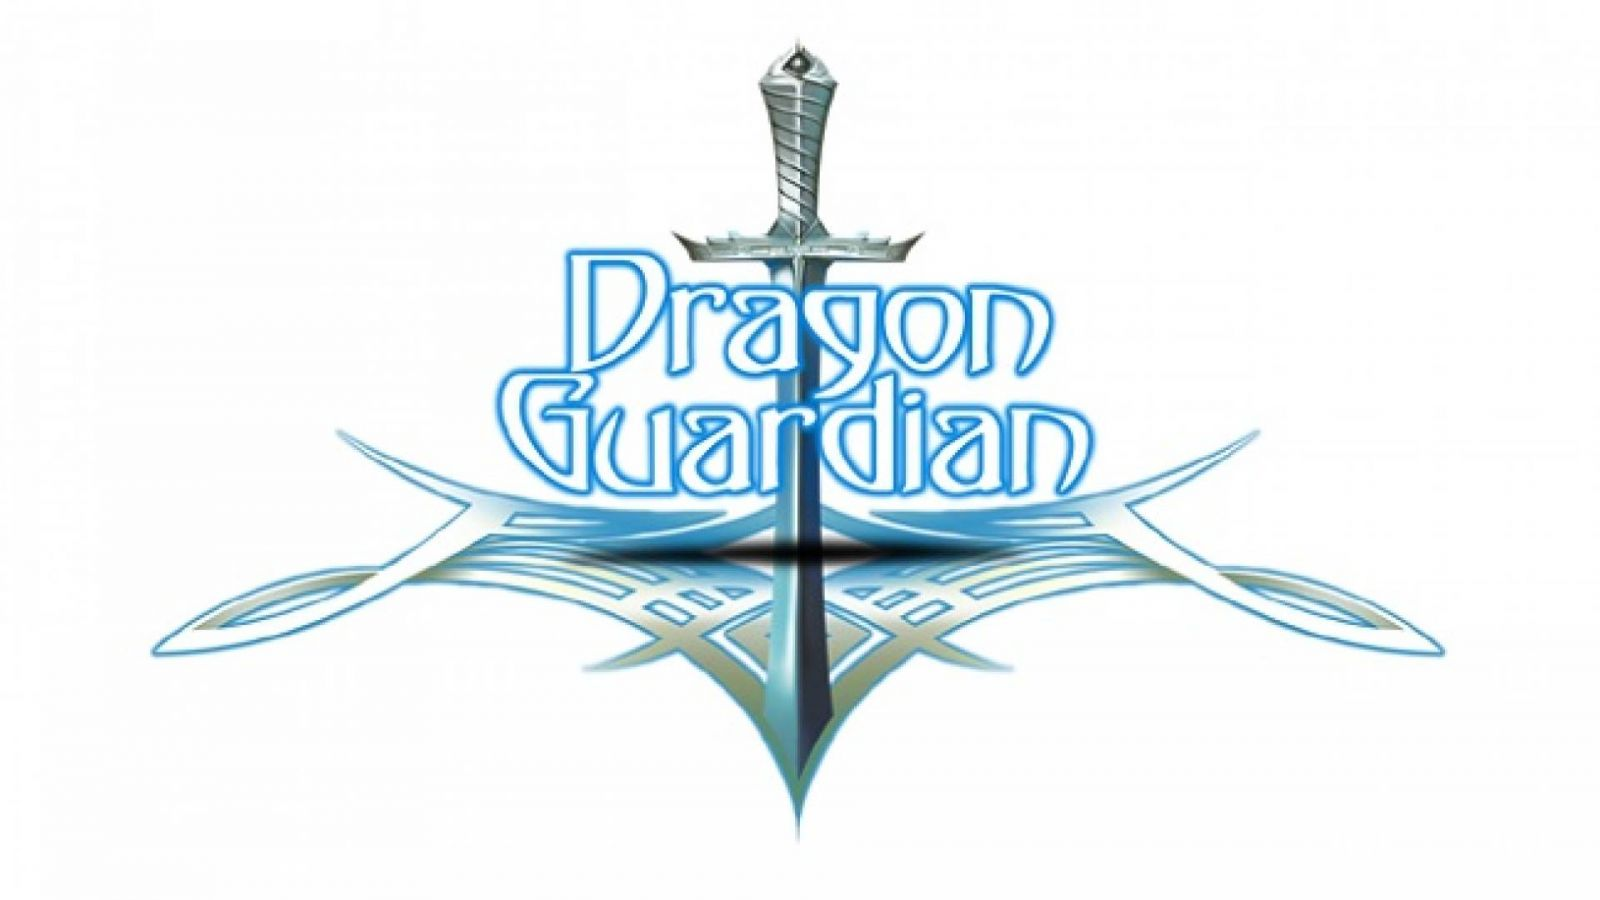 Neues Mini-Album von Dragon Guardian © Dragon Guardian